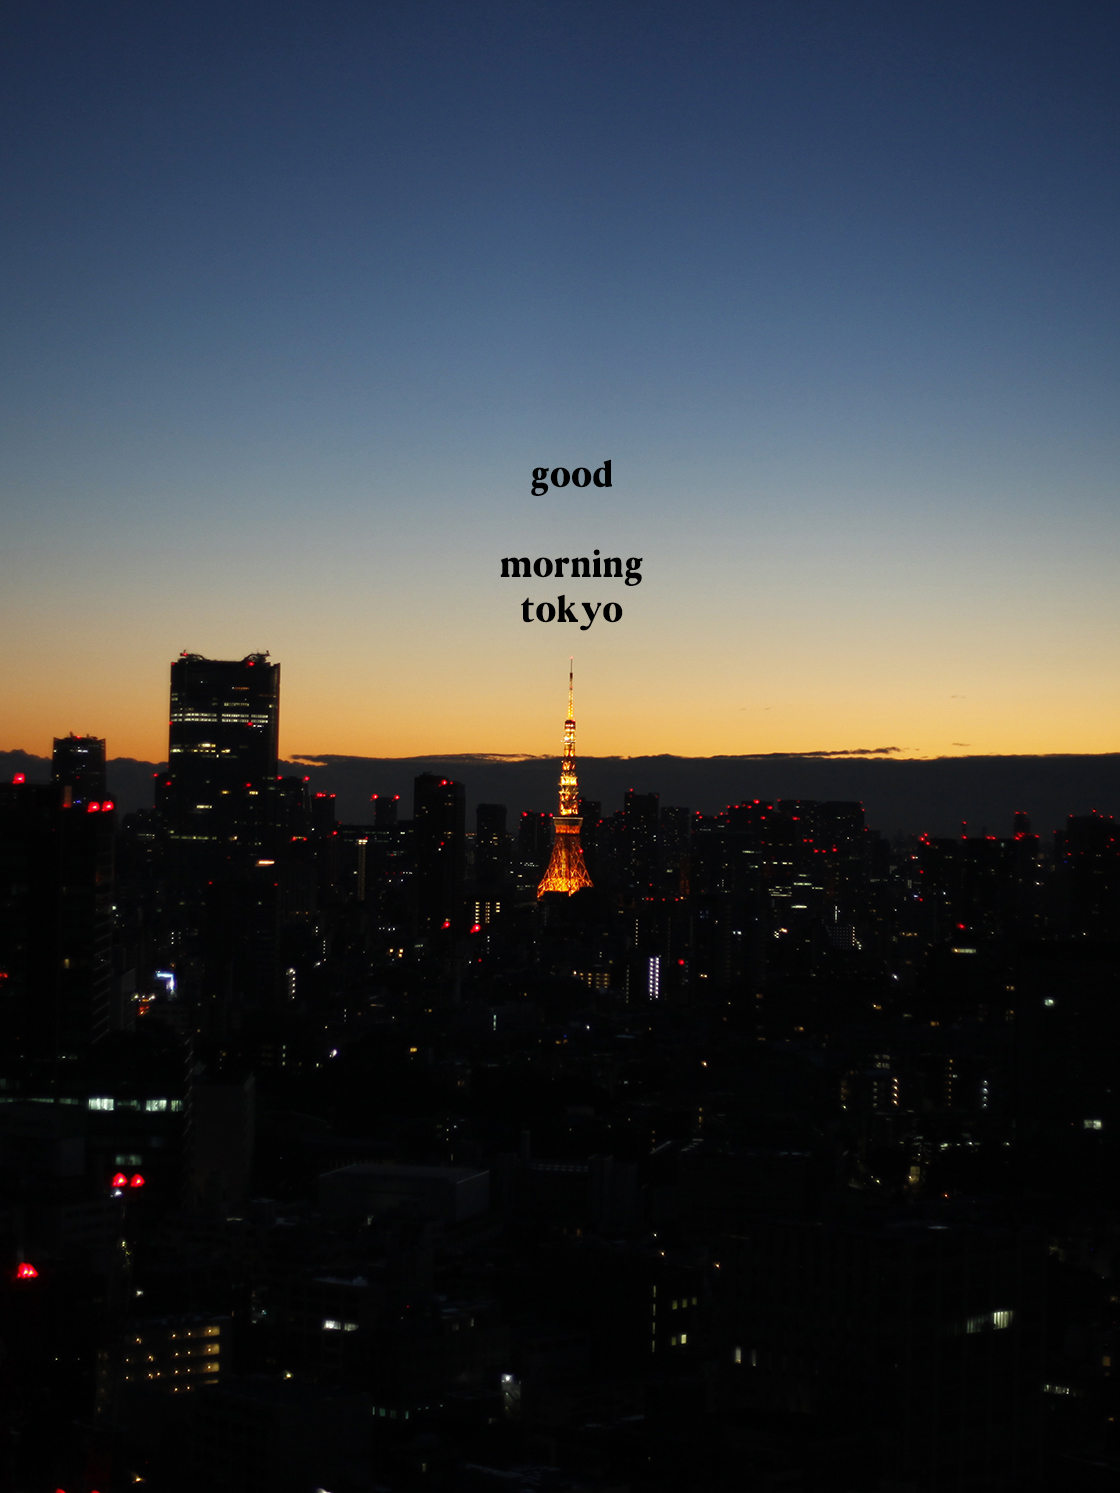 morning tokyo with words